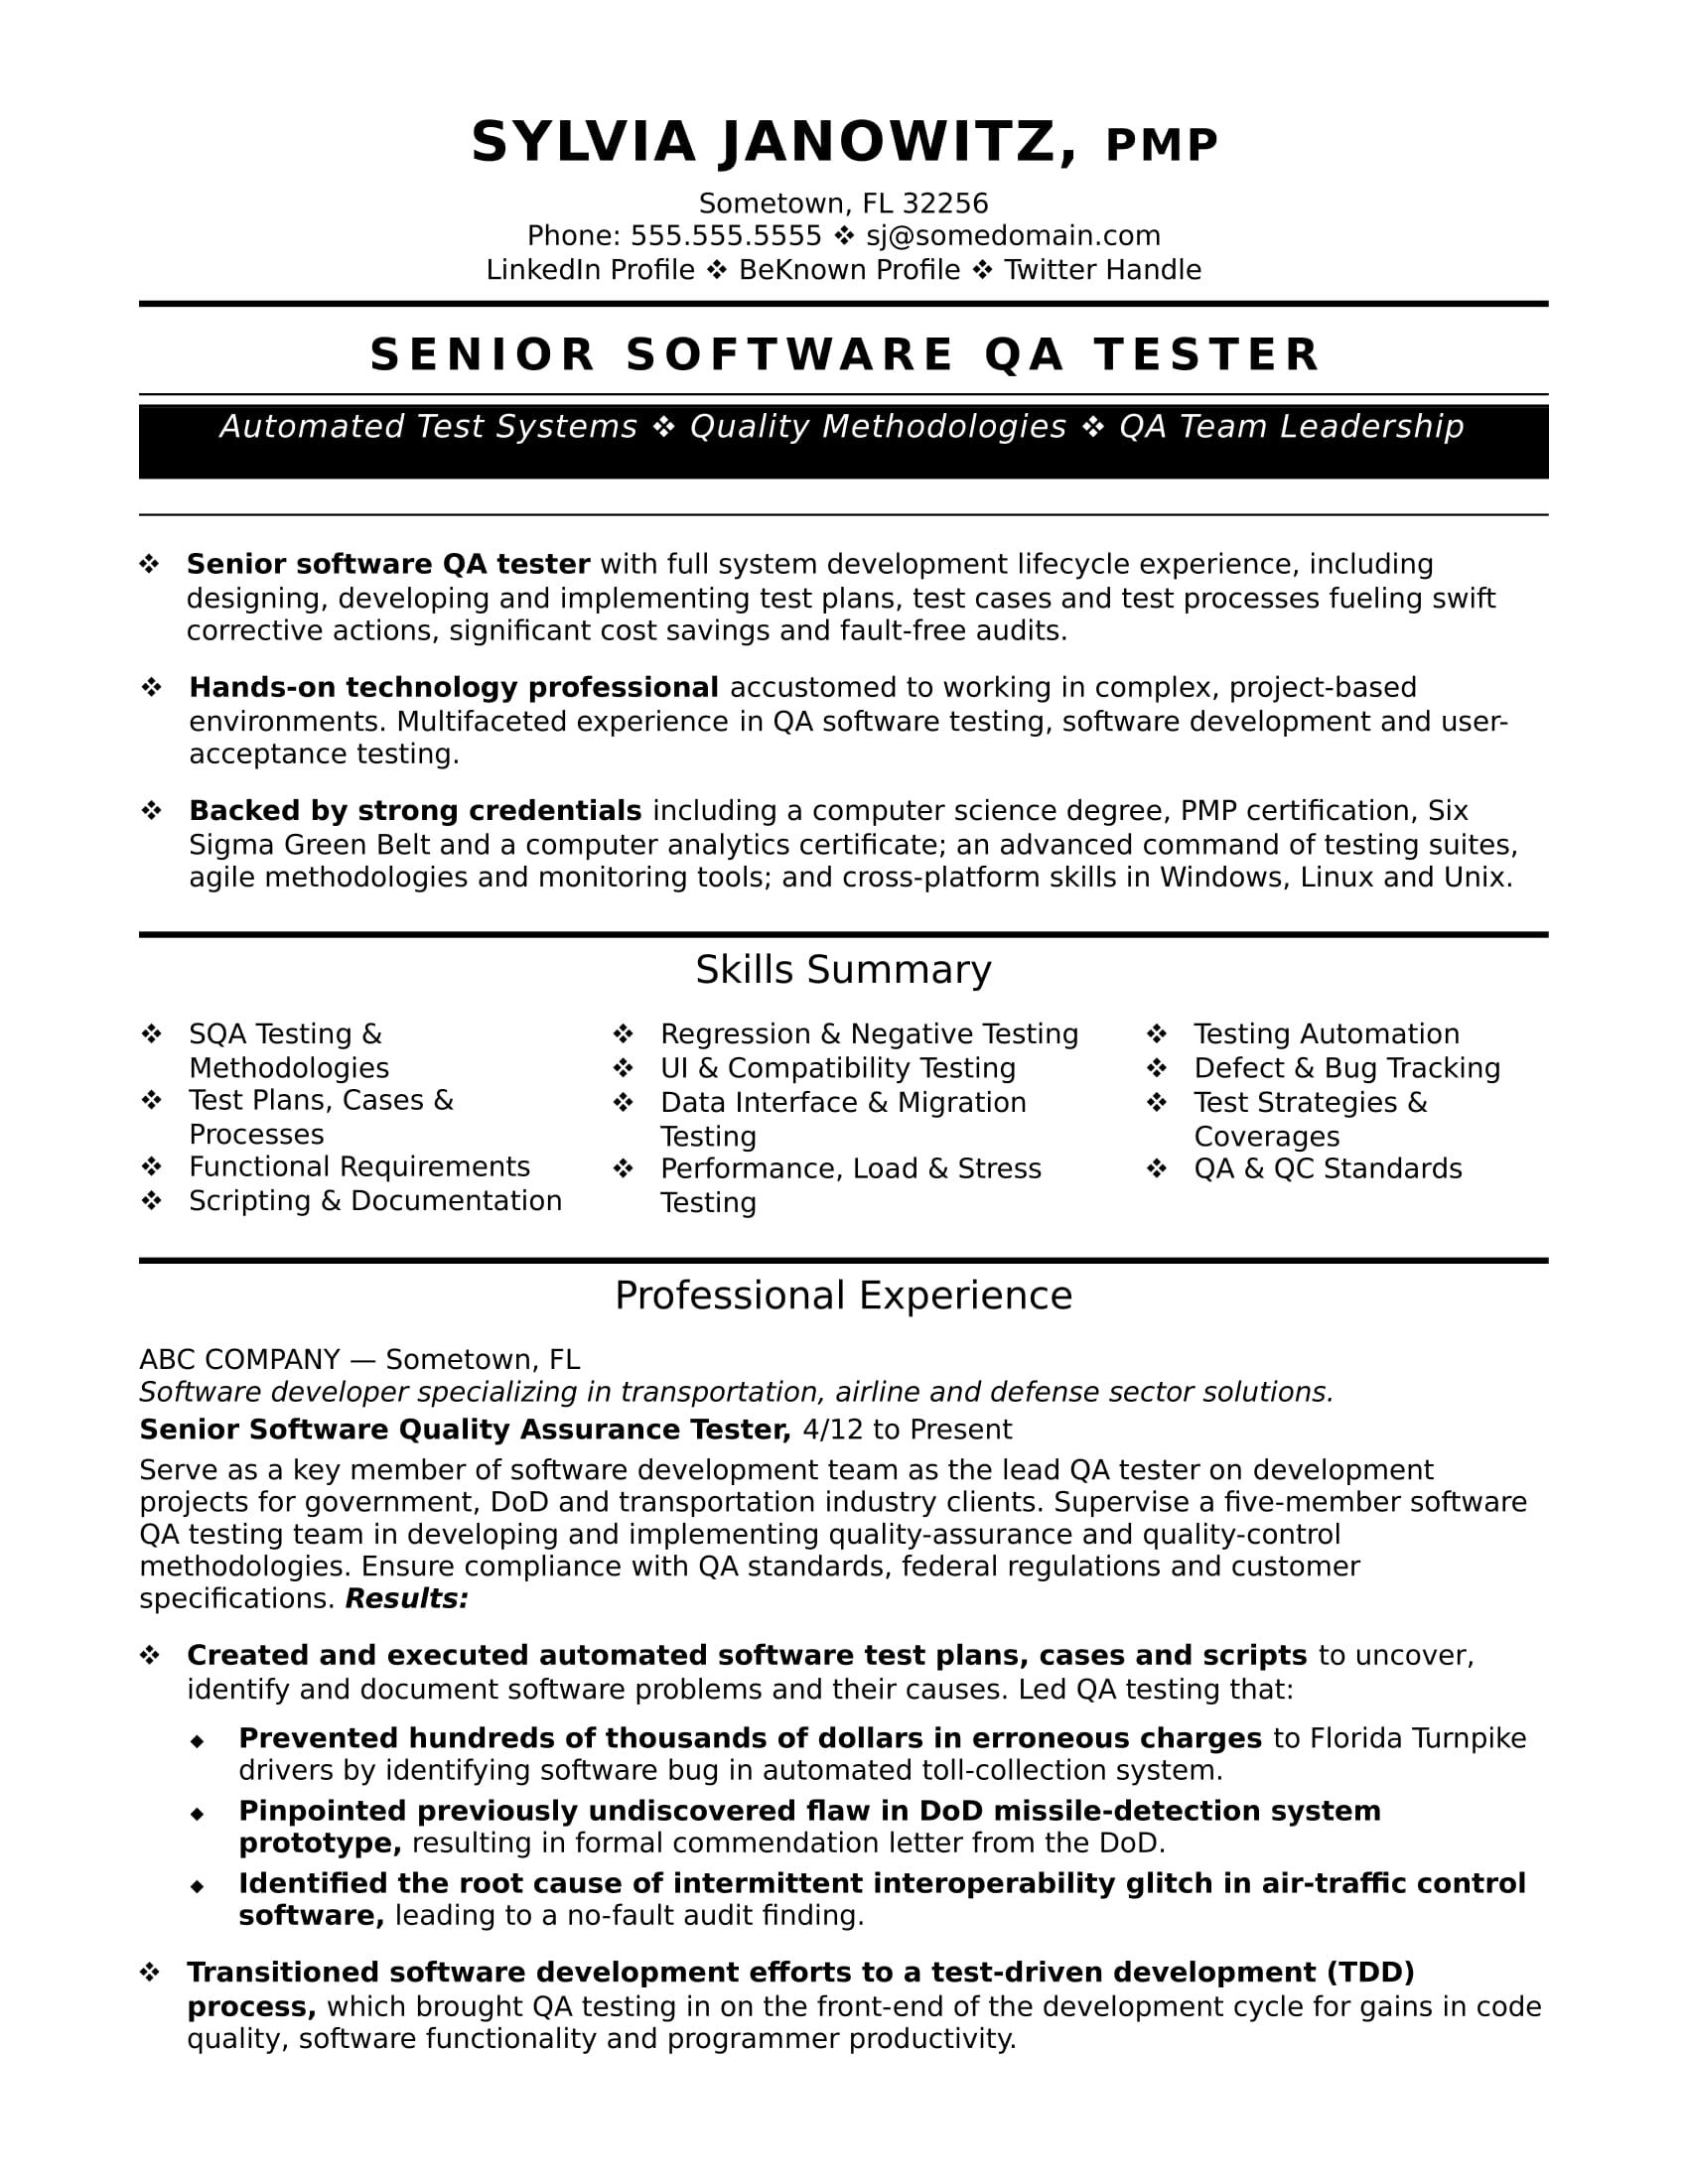 Experienced QA software tester resume sample | Pinterest | Sample ...